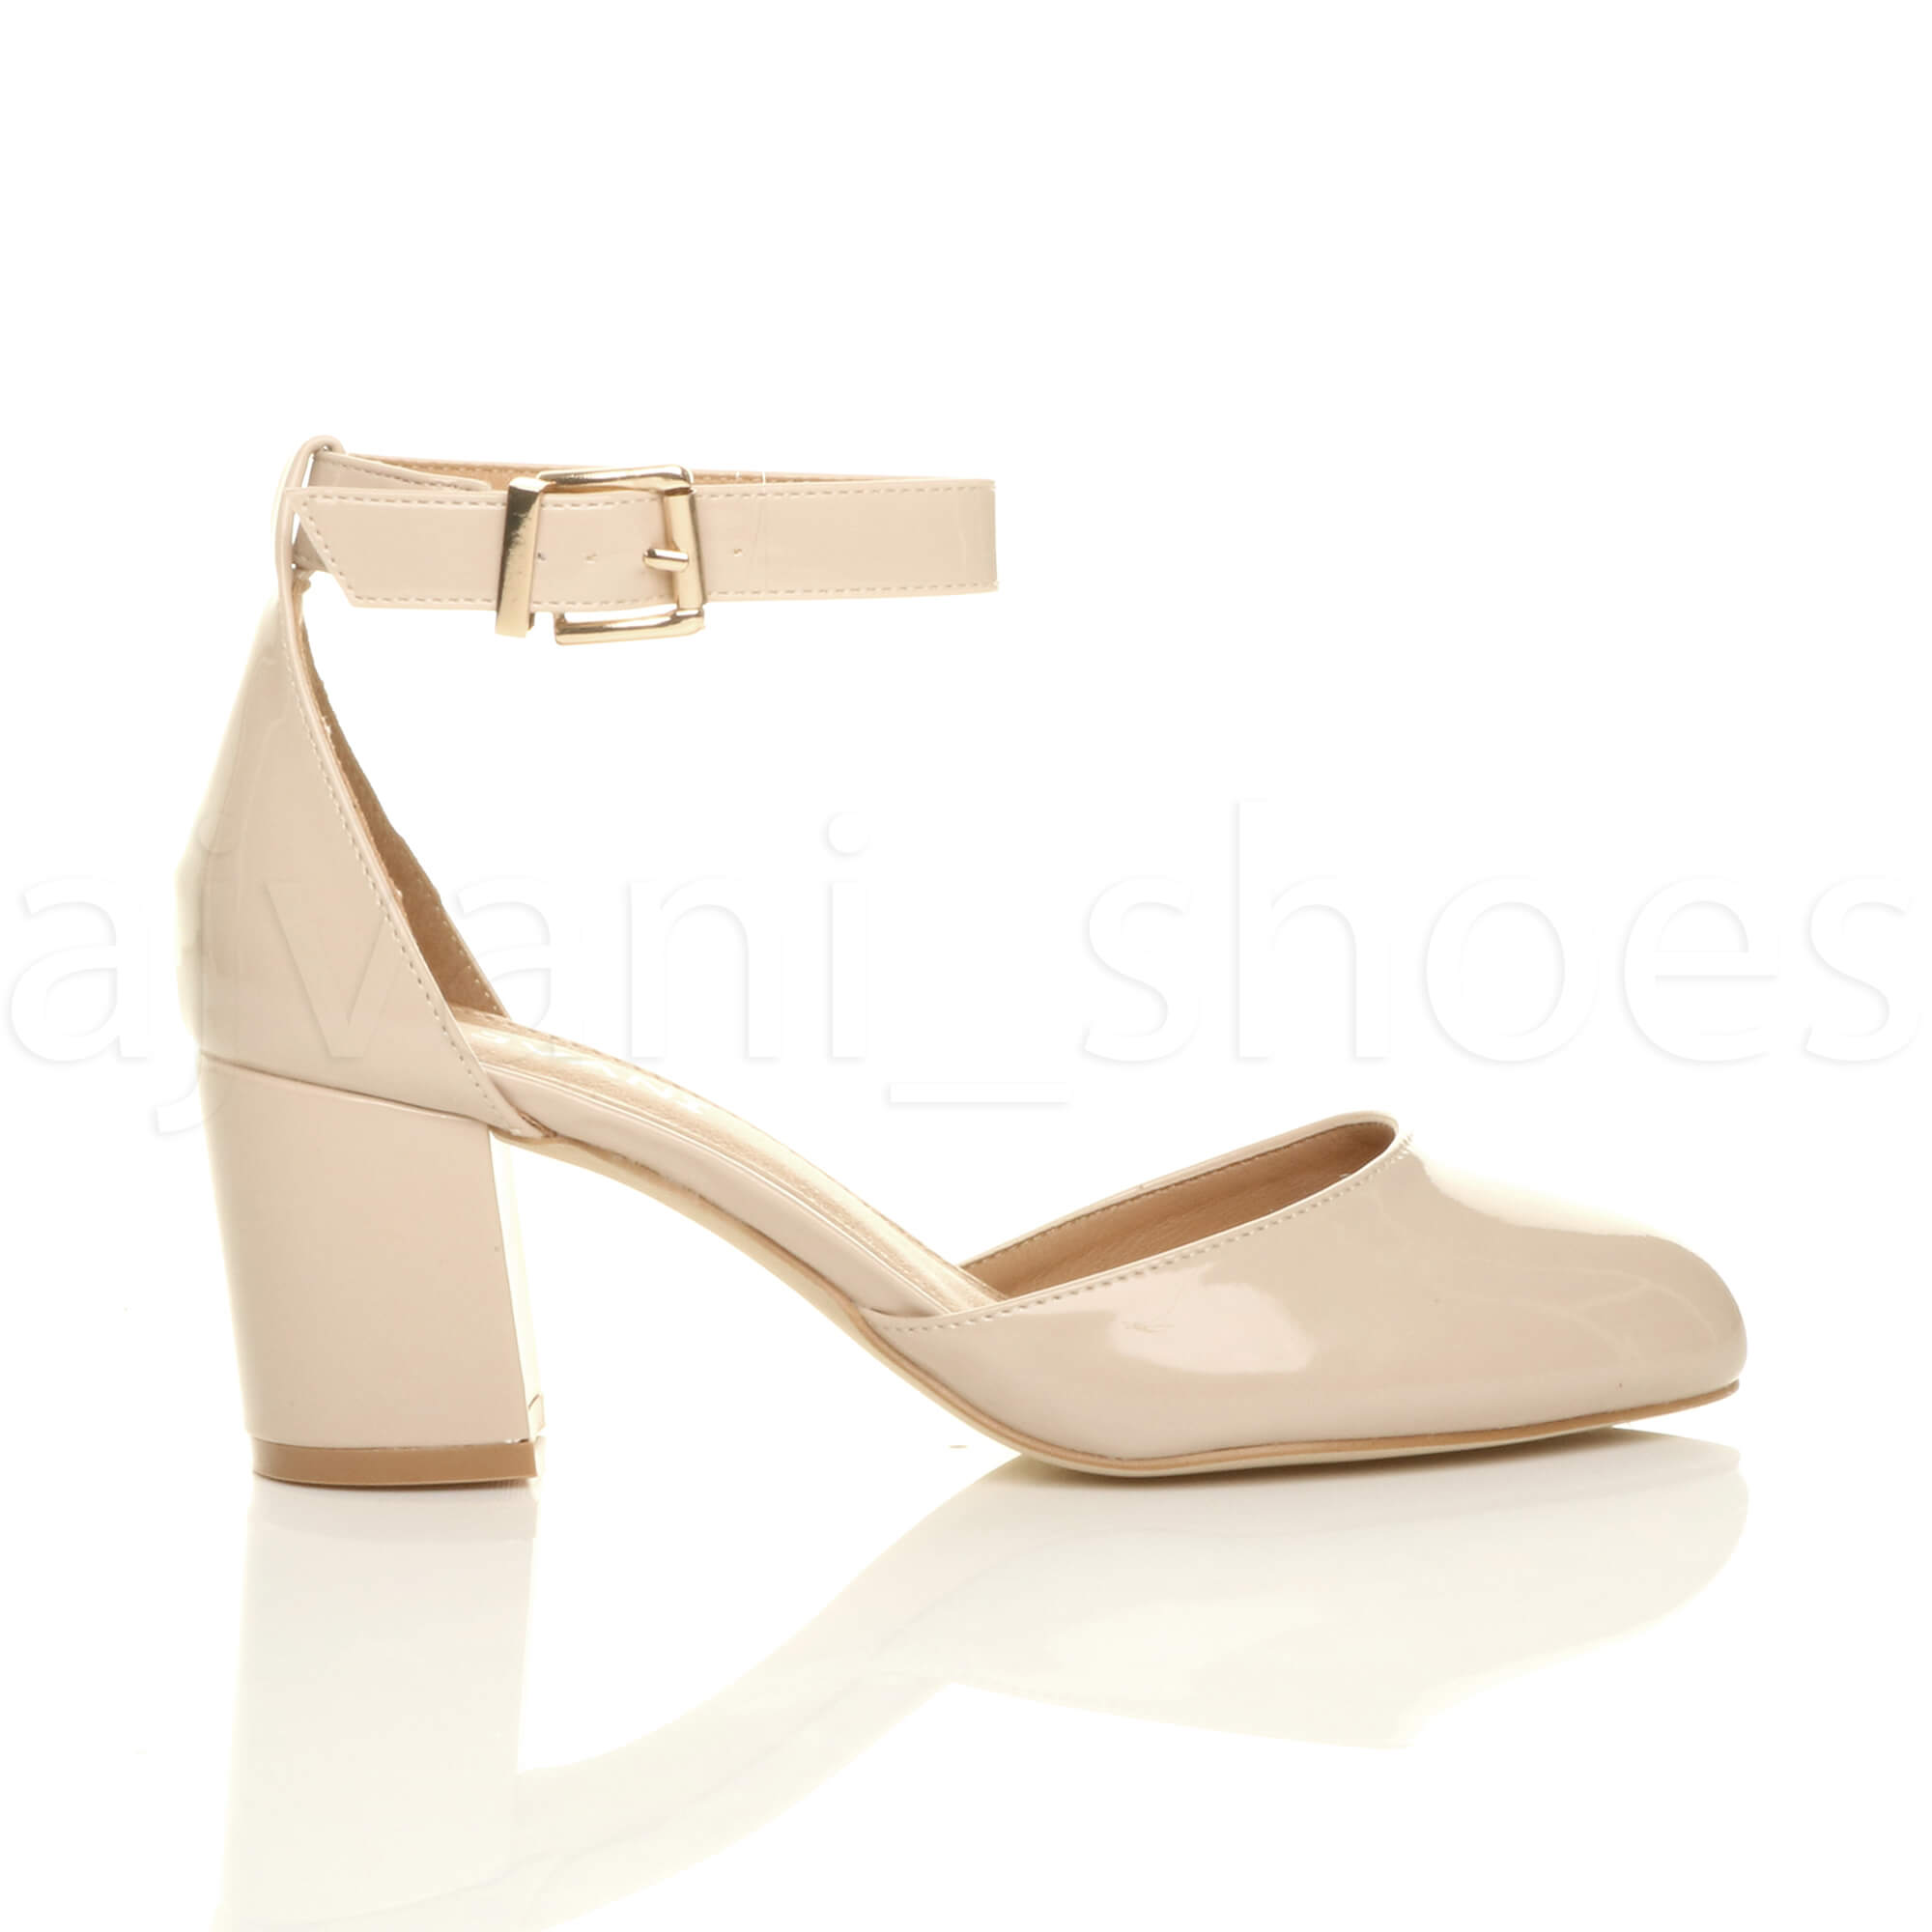 WOMENS-LADIES-LOW-MID-BLOCK-HEEL-ANKLE-STRAP-MARY-JANE-COURT-SHOES-SANDALS-SIZE thumbnail 115